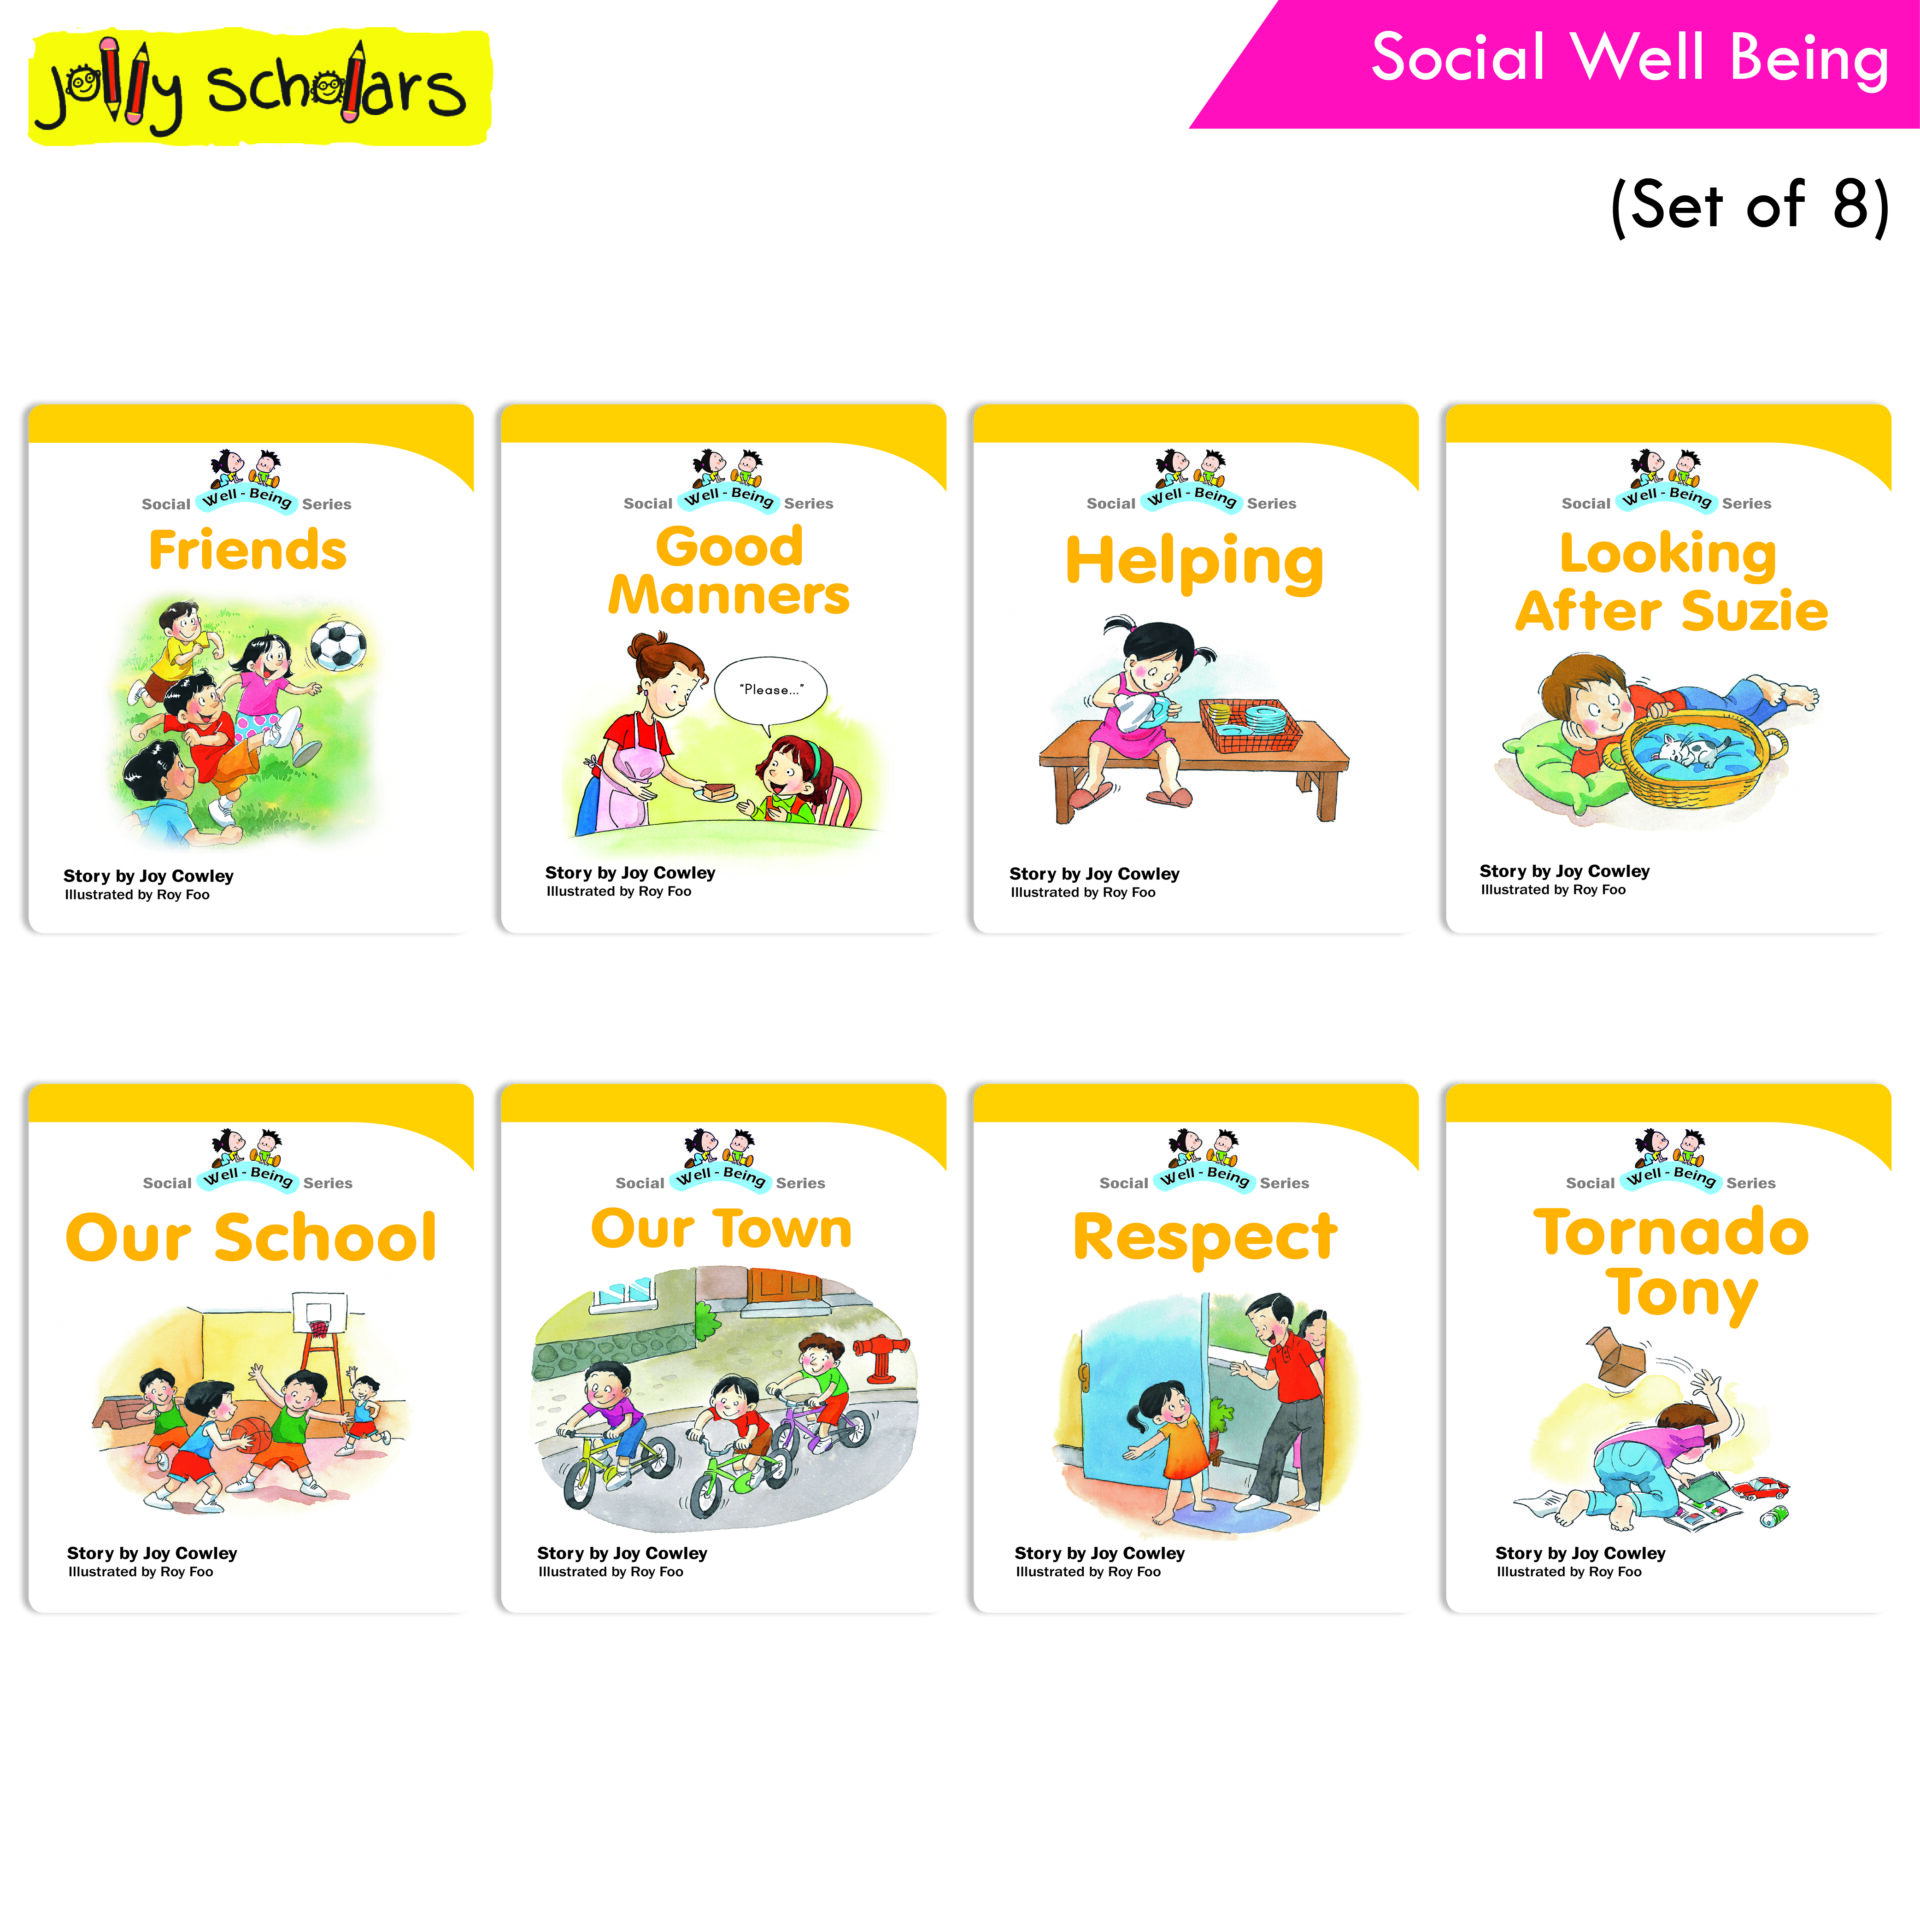 Jolly Scholars Social Well Being Set of 8 1